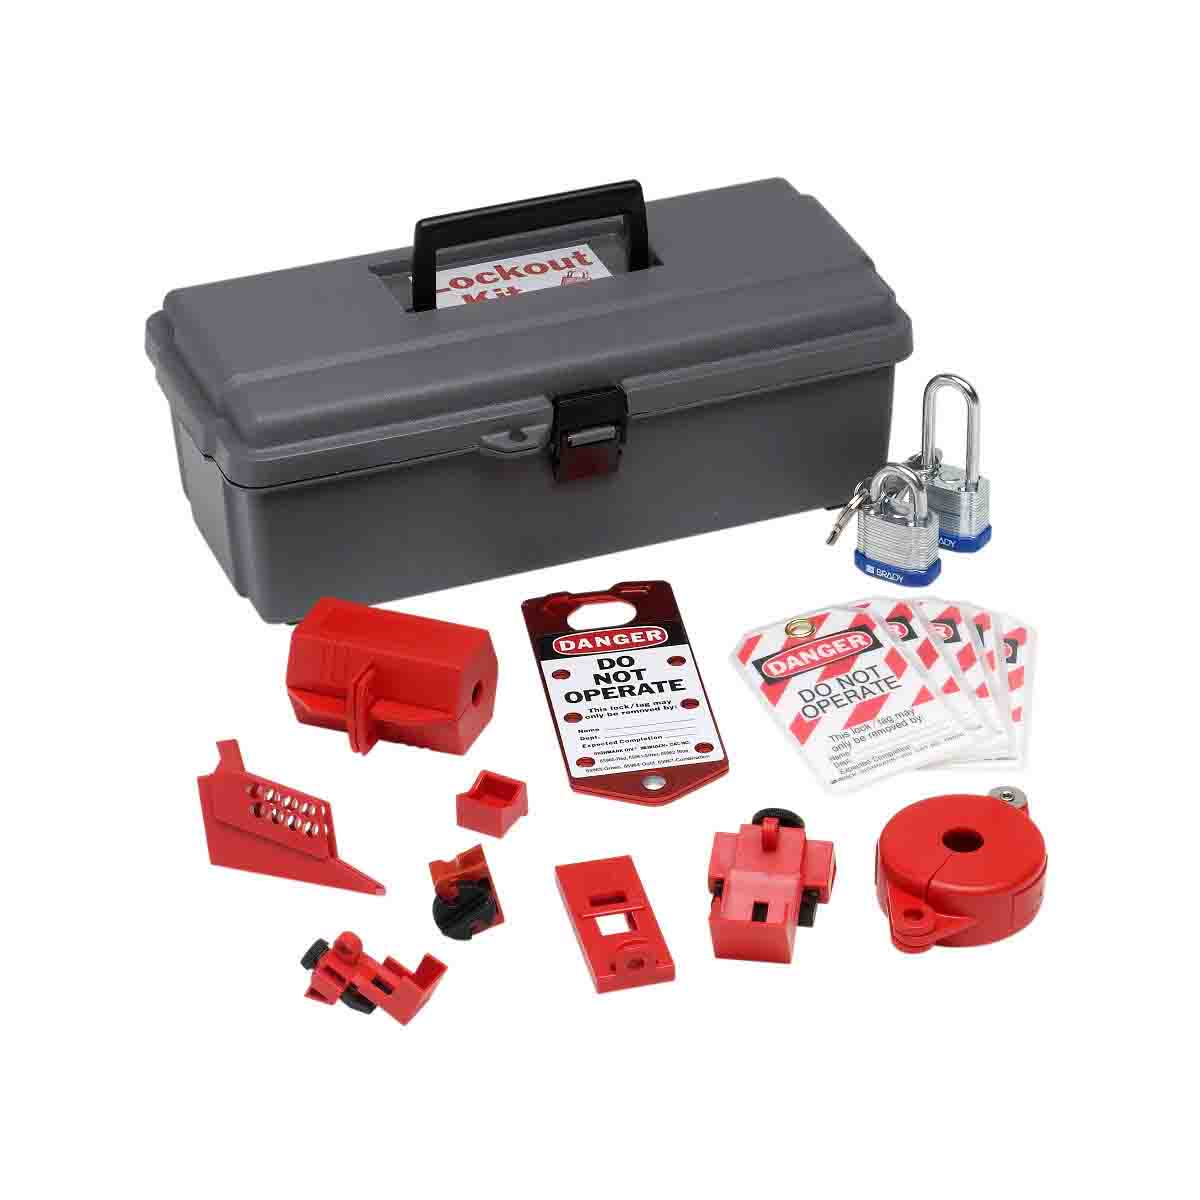 BRADY 65289 Lockout Tool Box WithComponents